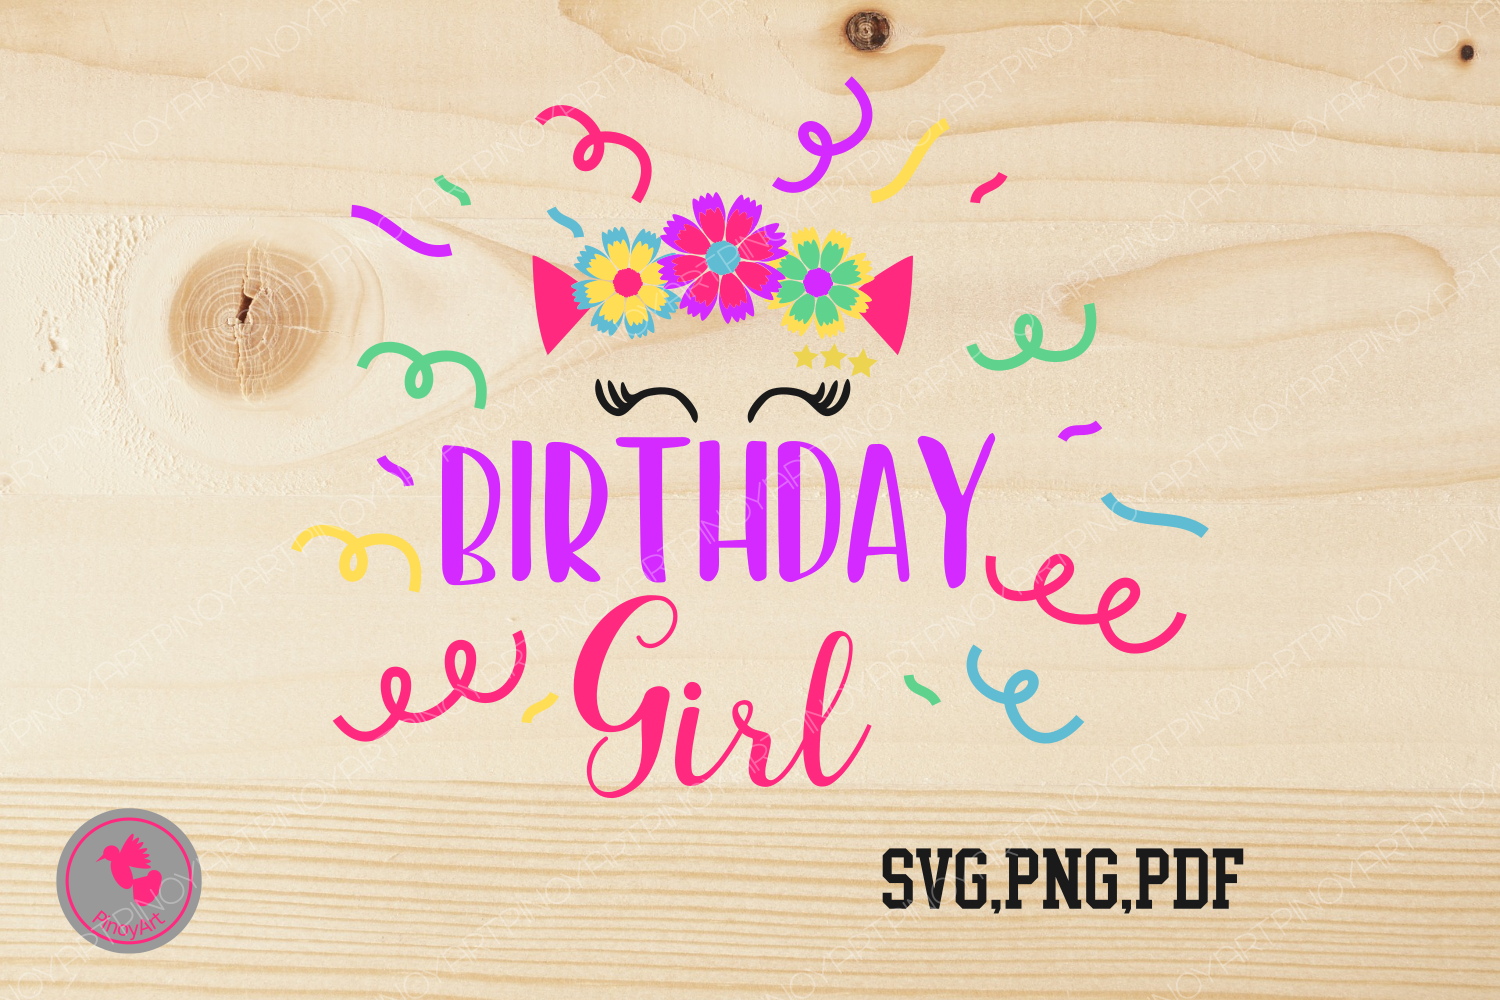 Download Free Birthday Girl Graphic By Pinoyartkreatib Creative Fabrica for Cricut Explore, Silhouette and other cutting machines.